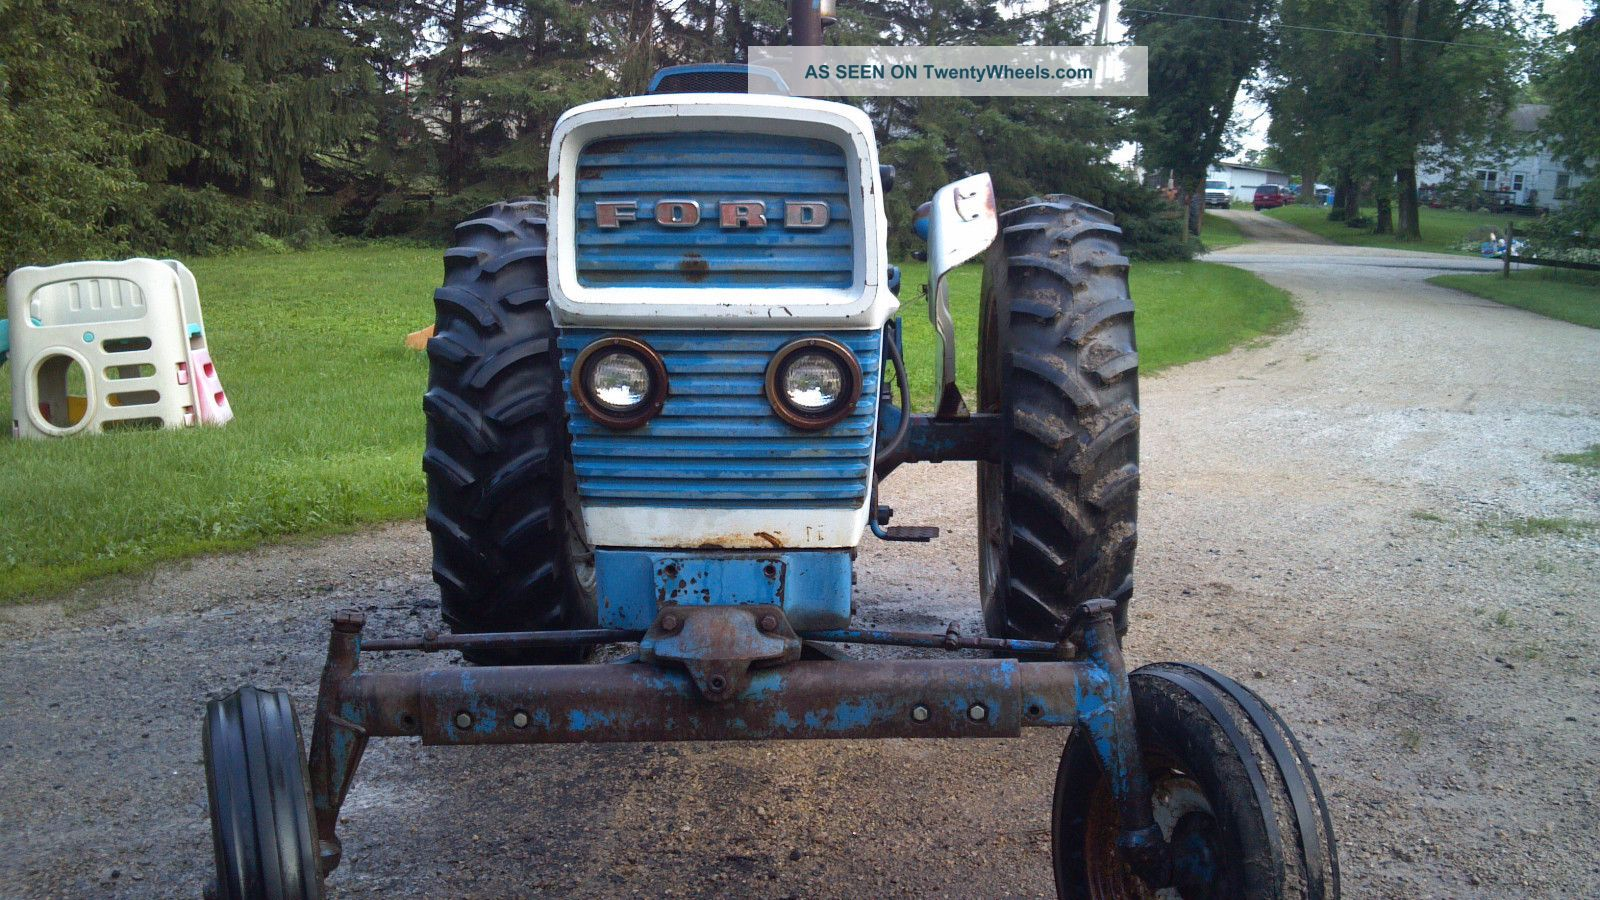 Ford 6000 Tractor Parts : Ford commander tractor parts